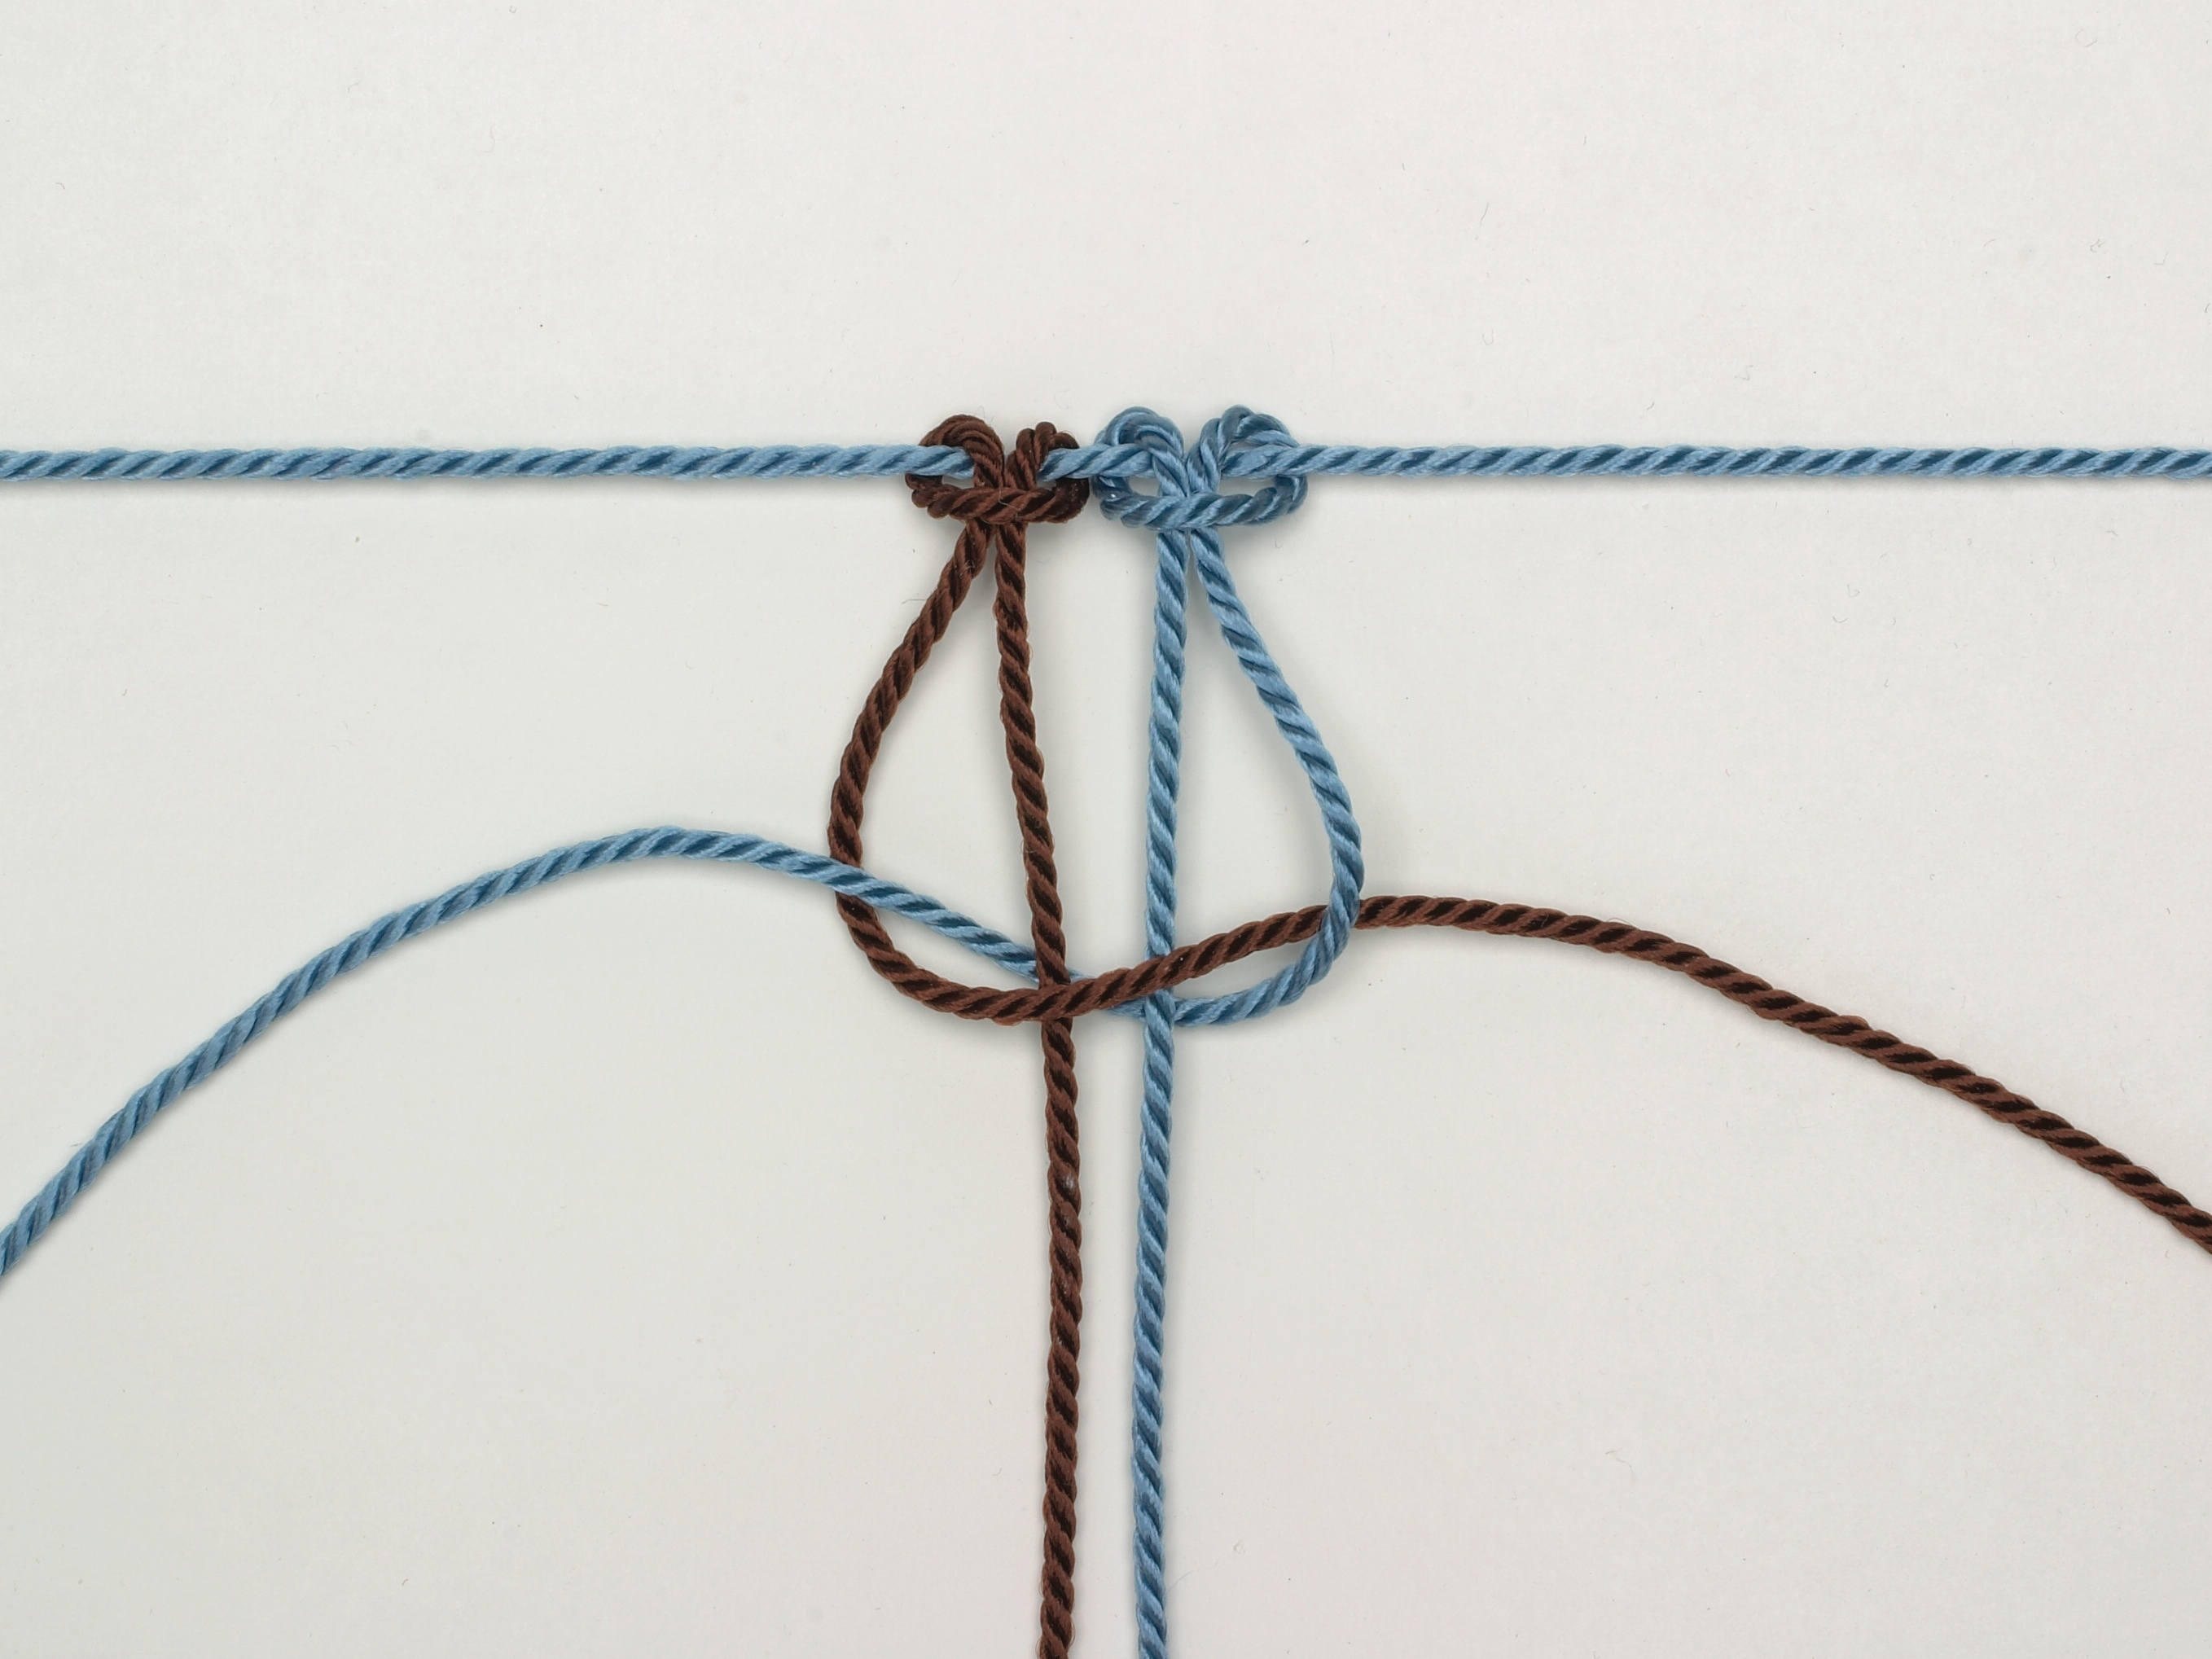 New Project: Macramé 101